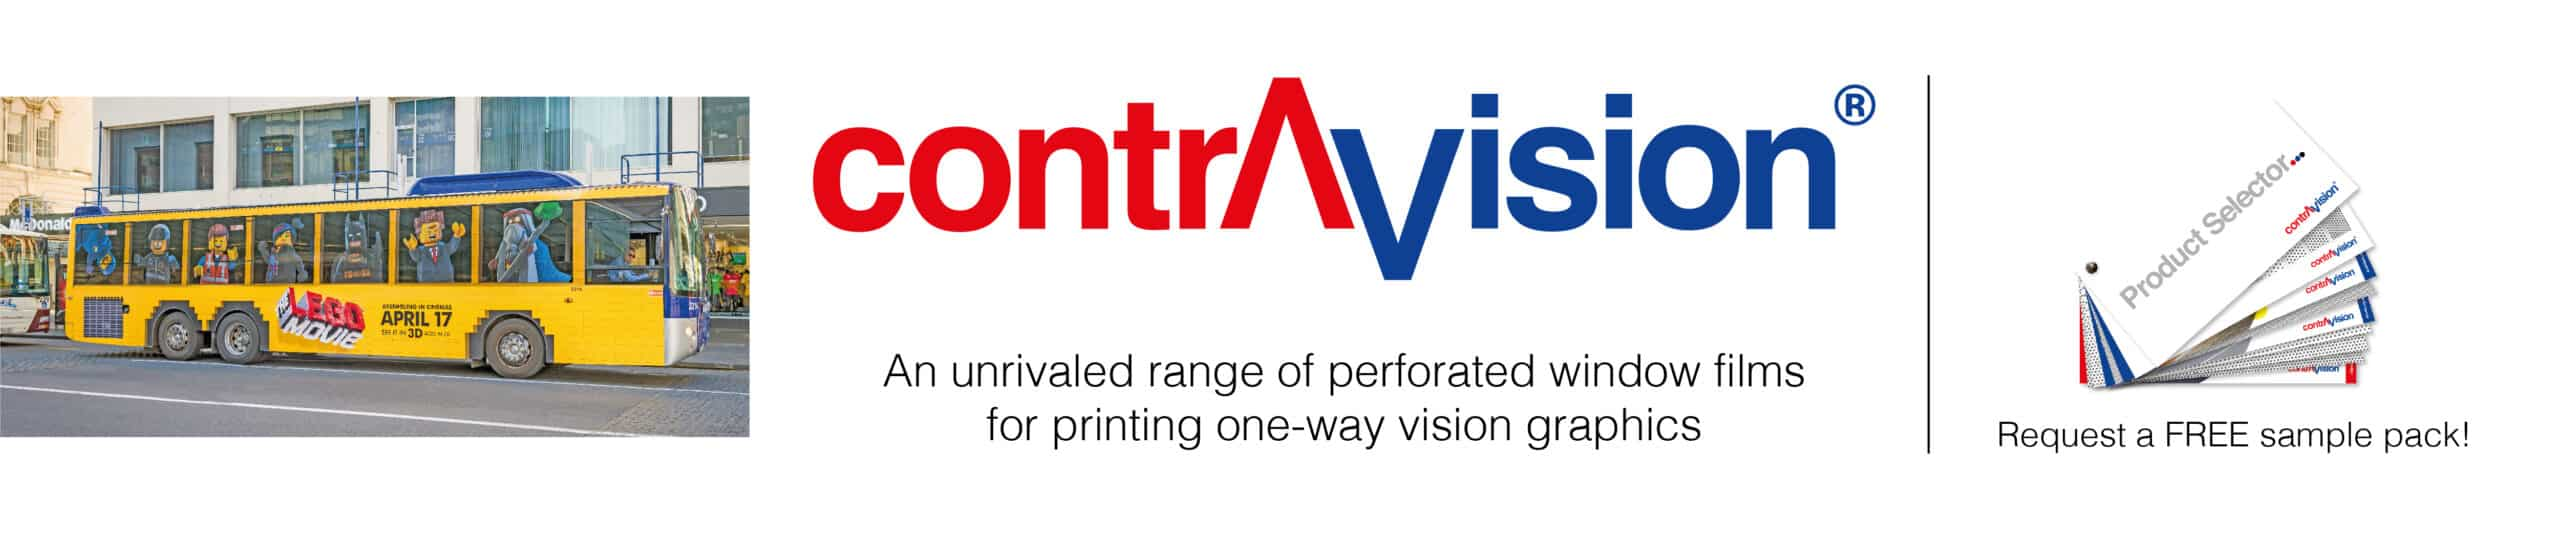 Contra Vision Banner Ad